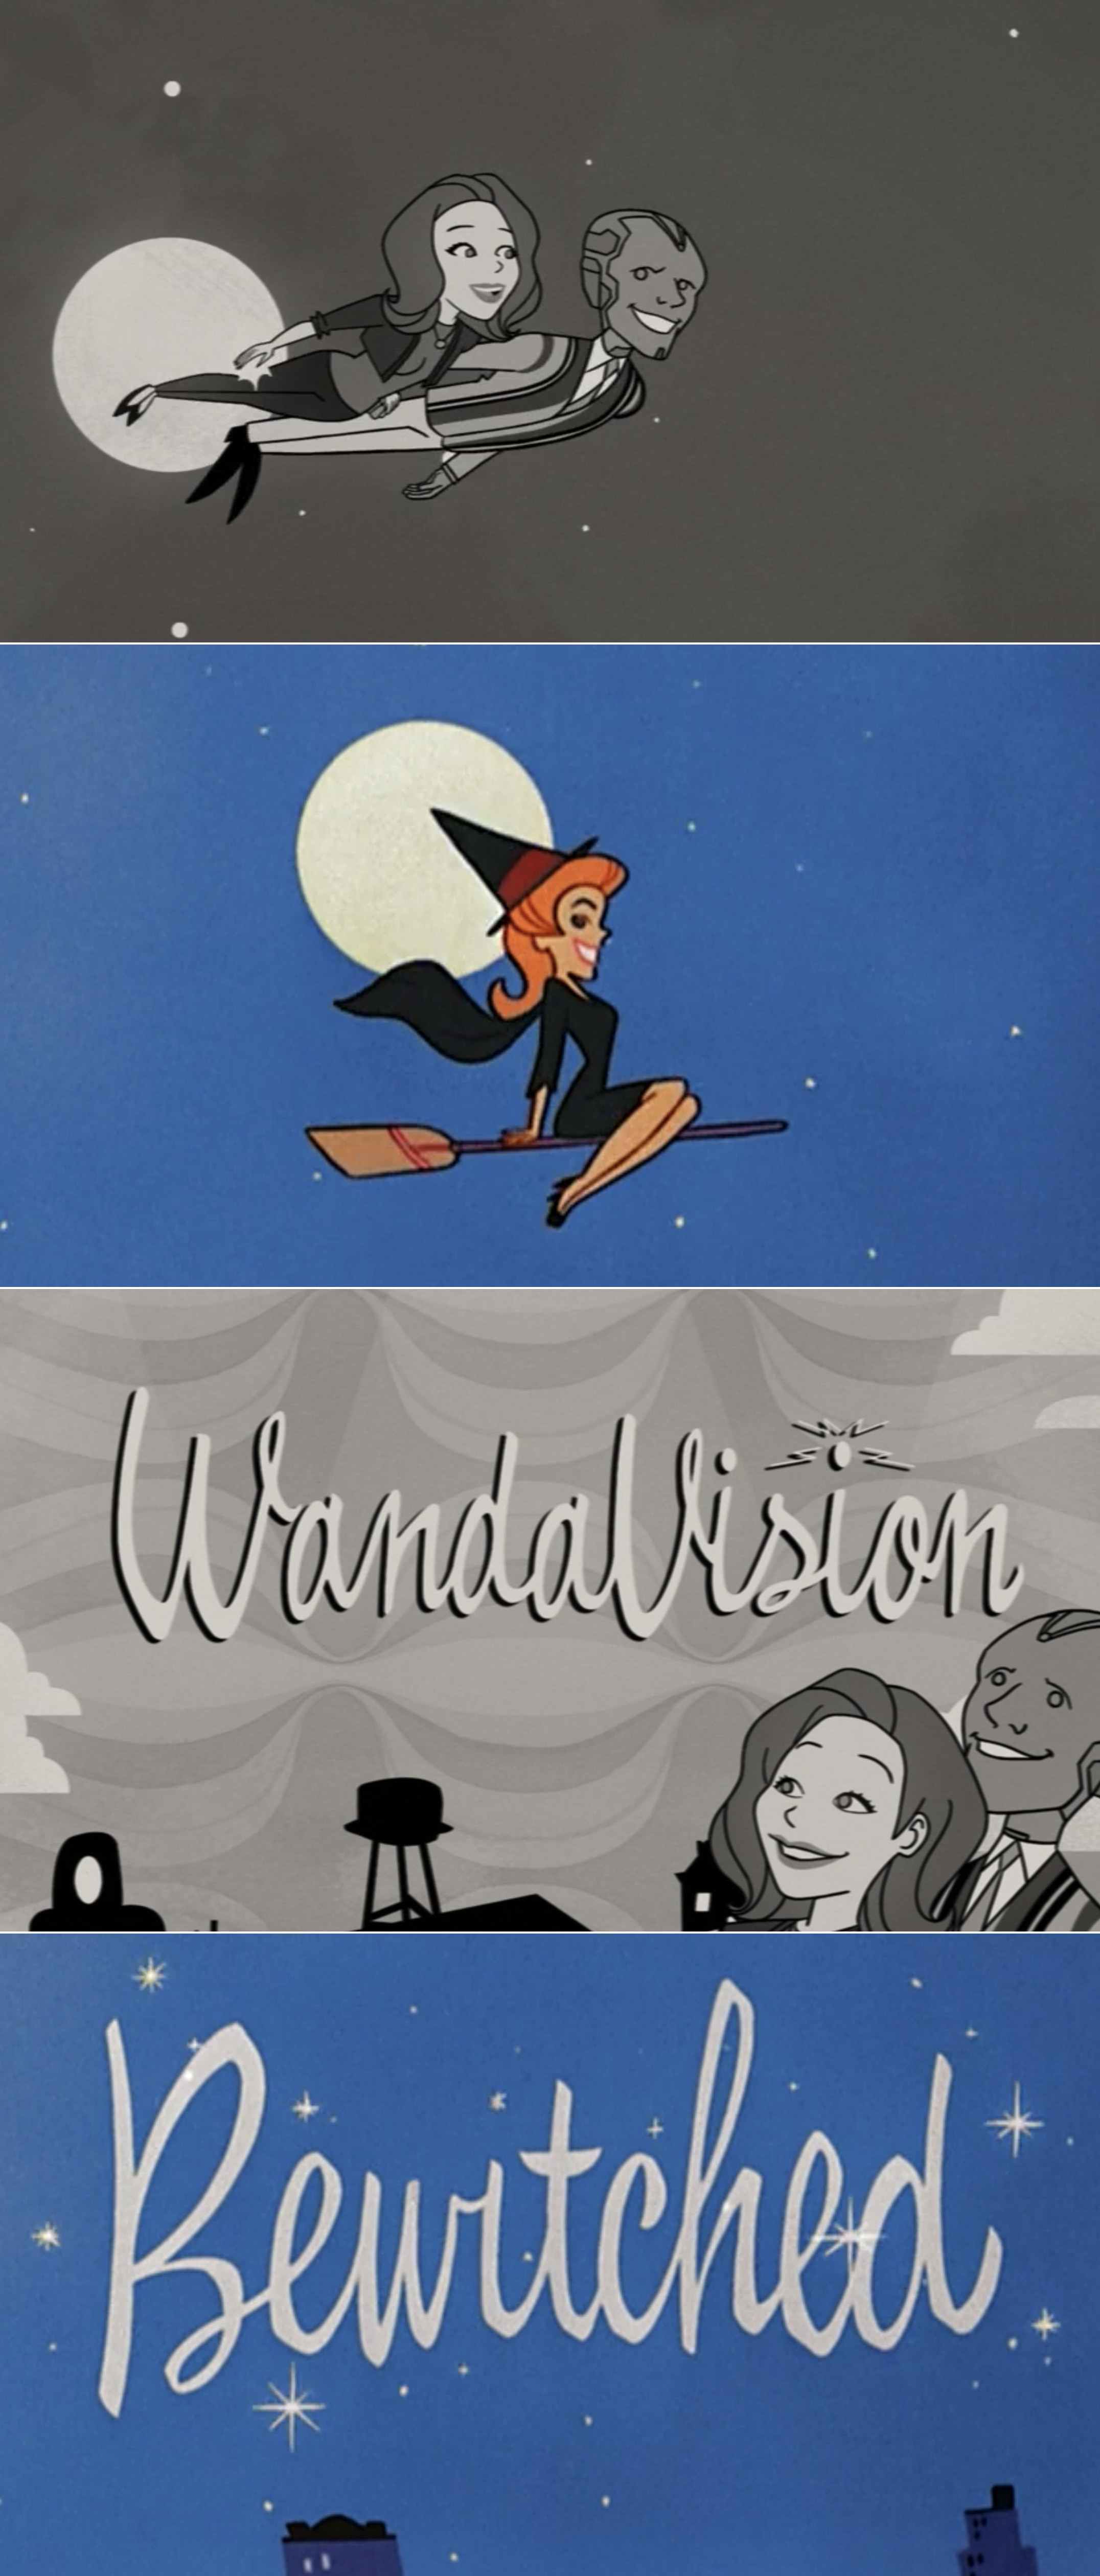 The WandaVision Episode 2 opening credits vs. the Bewitched ones